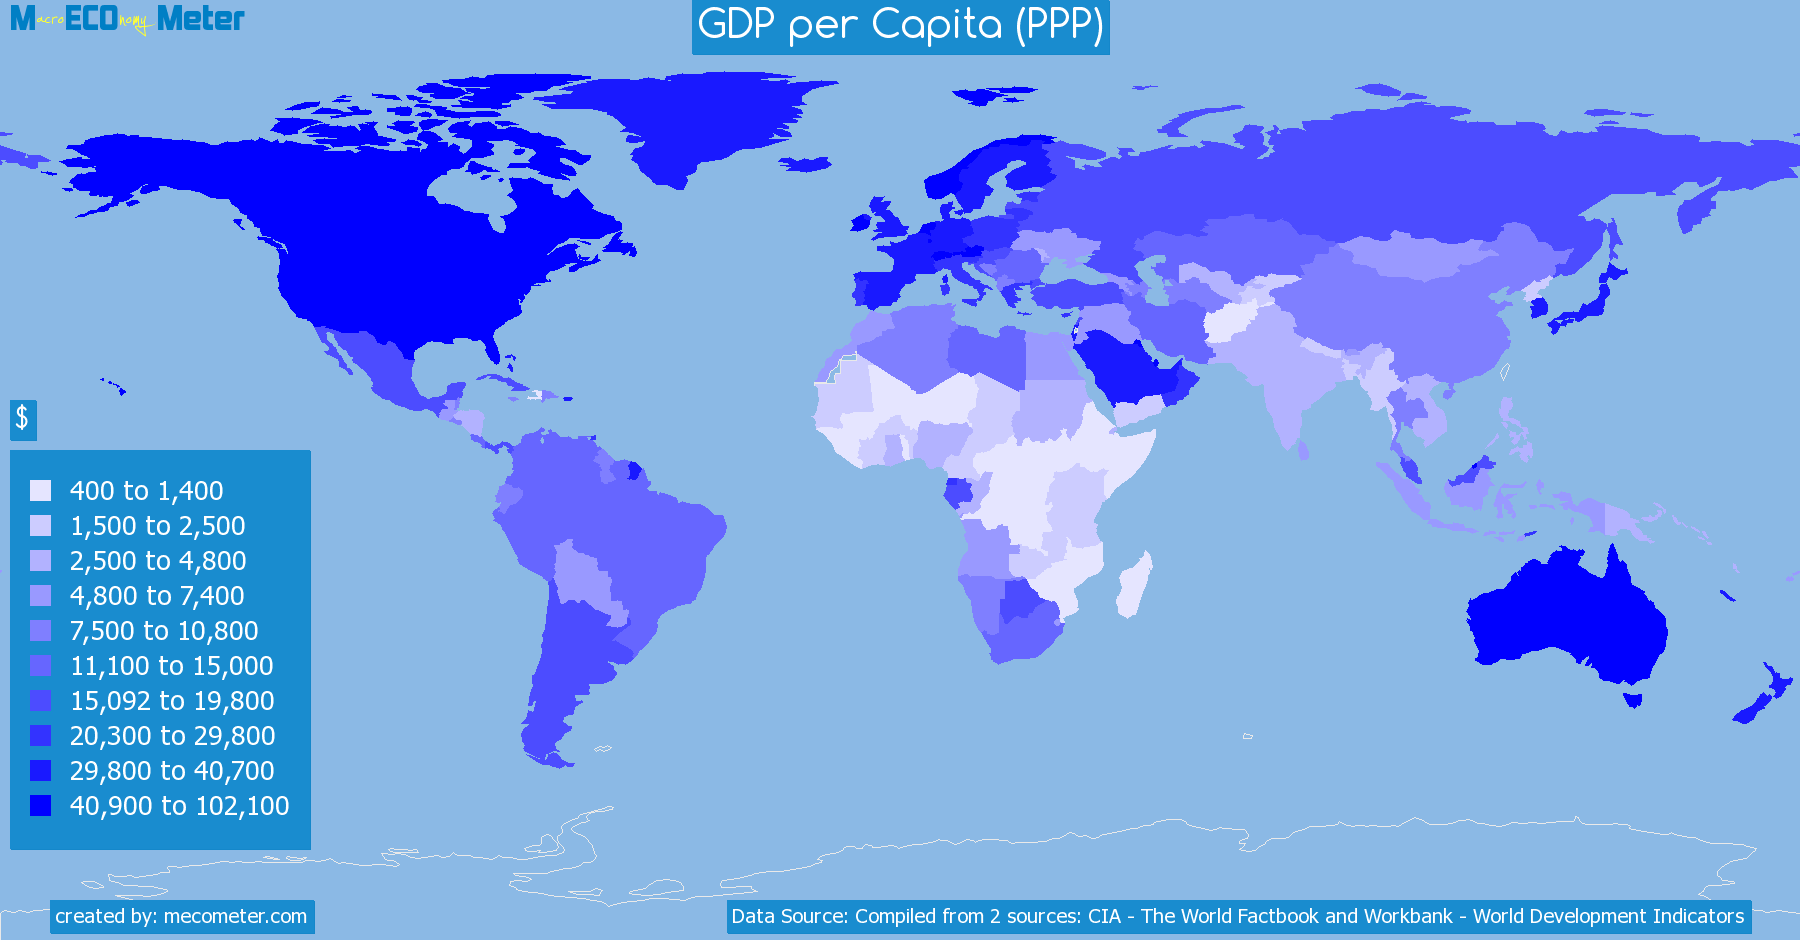 Worldmap of all countries colored to reflect the values of GDP per Capita (PPP)